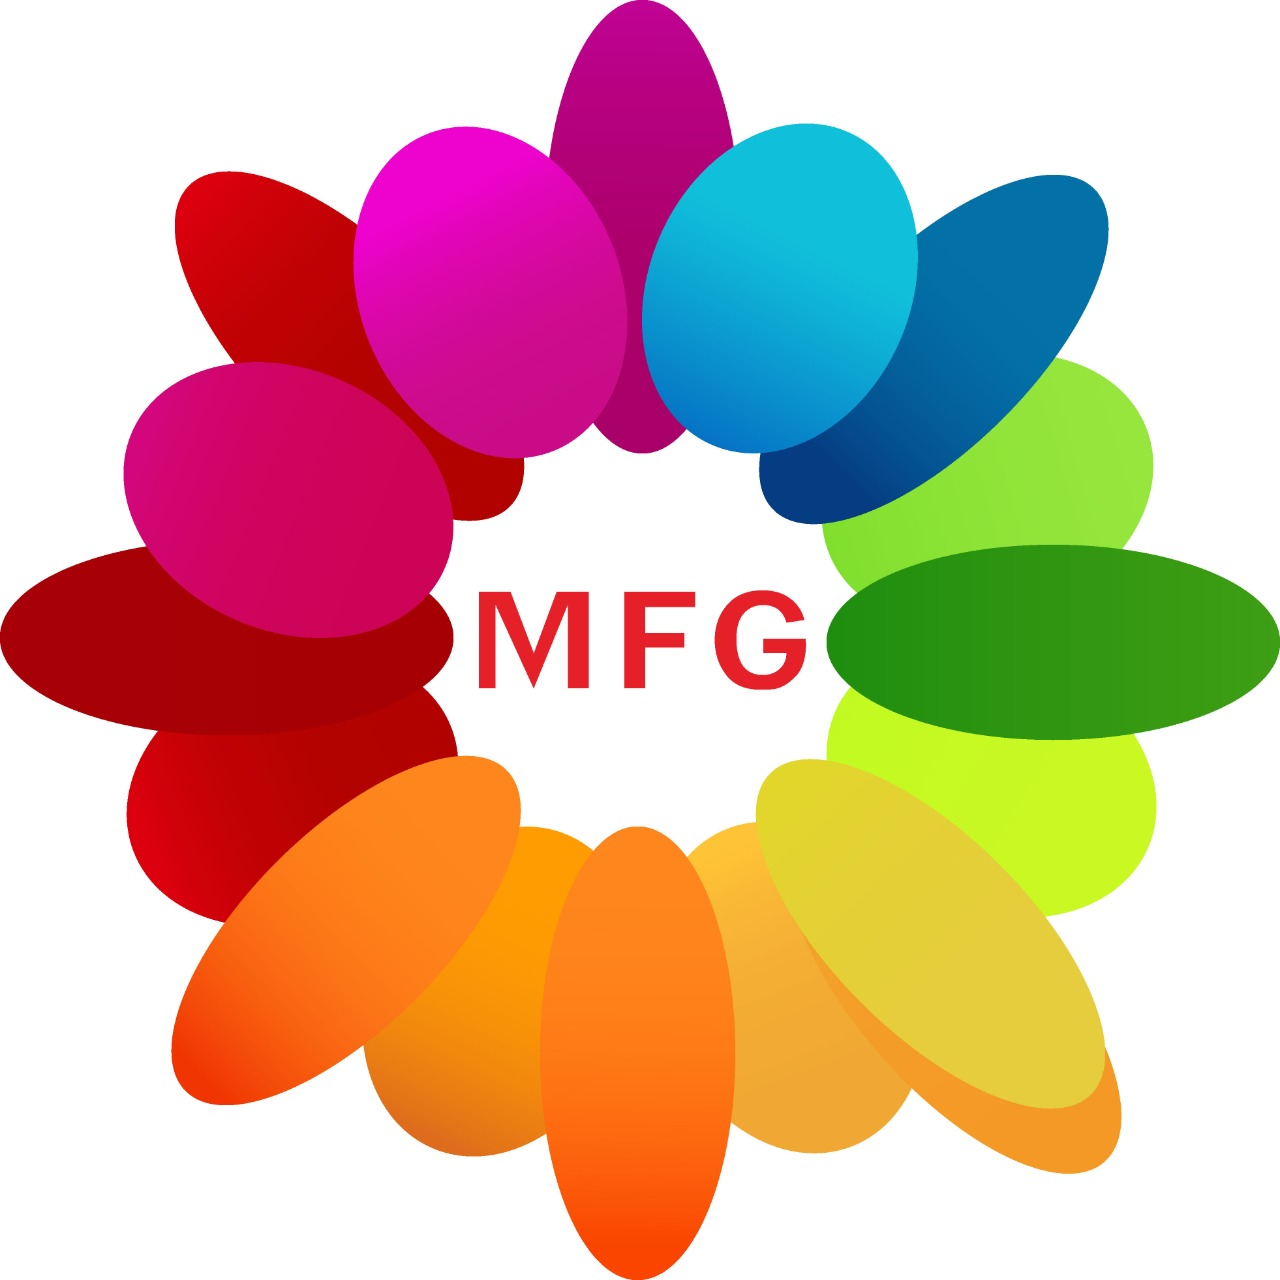 Beautiful Teddy bear bouquet of 30 teddy bear with fur and tissue wrapping looking rich and unique